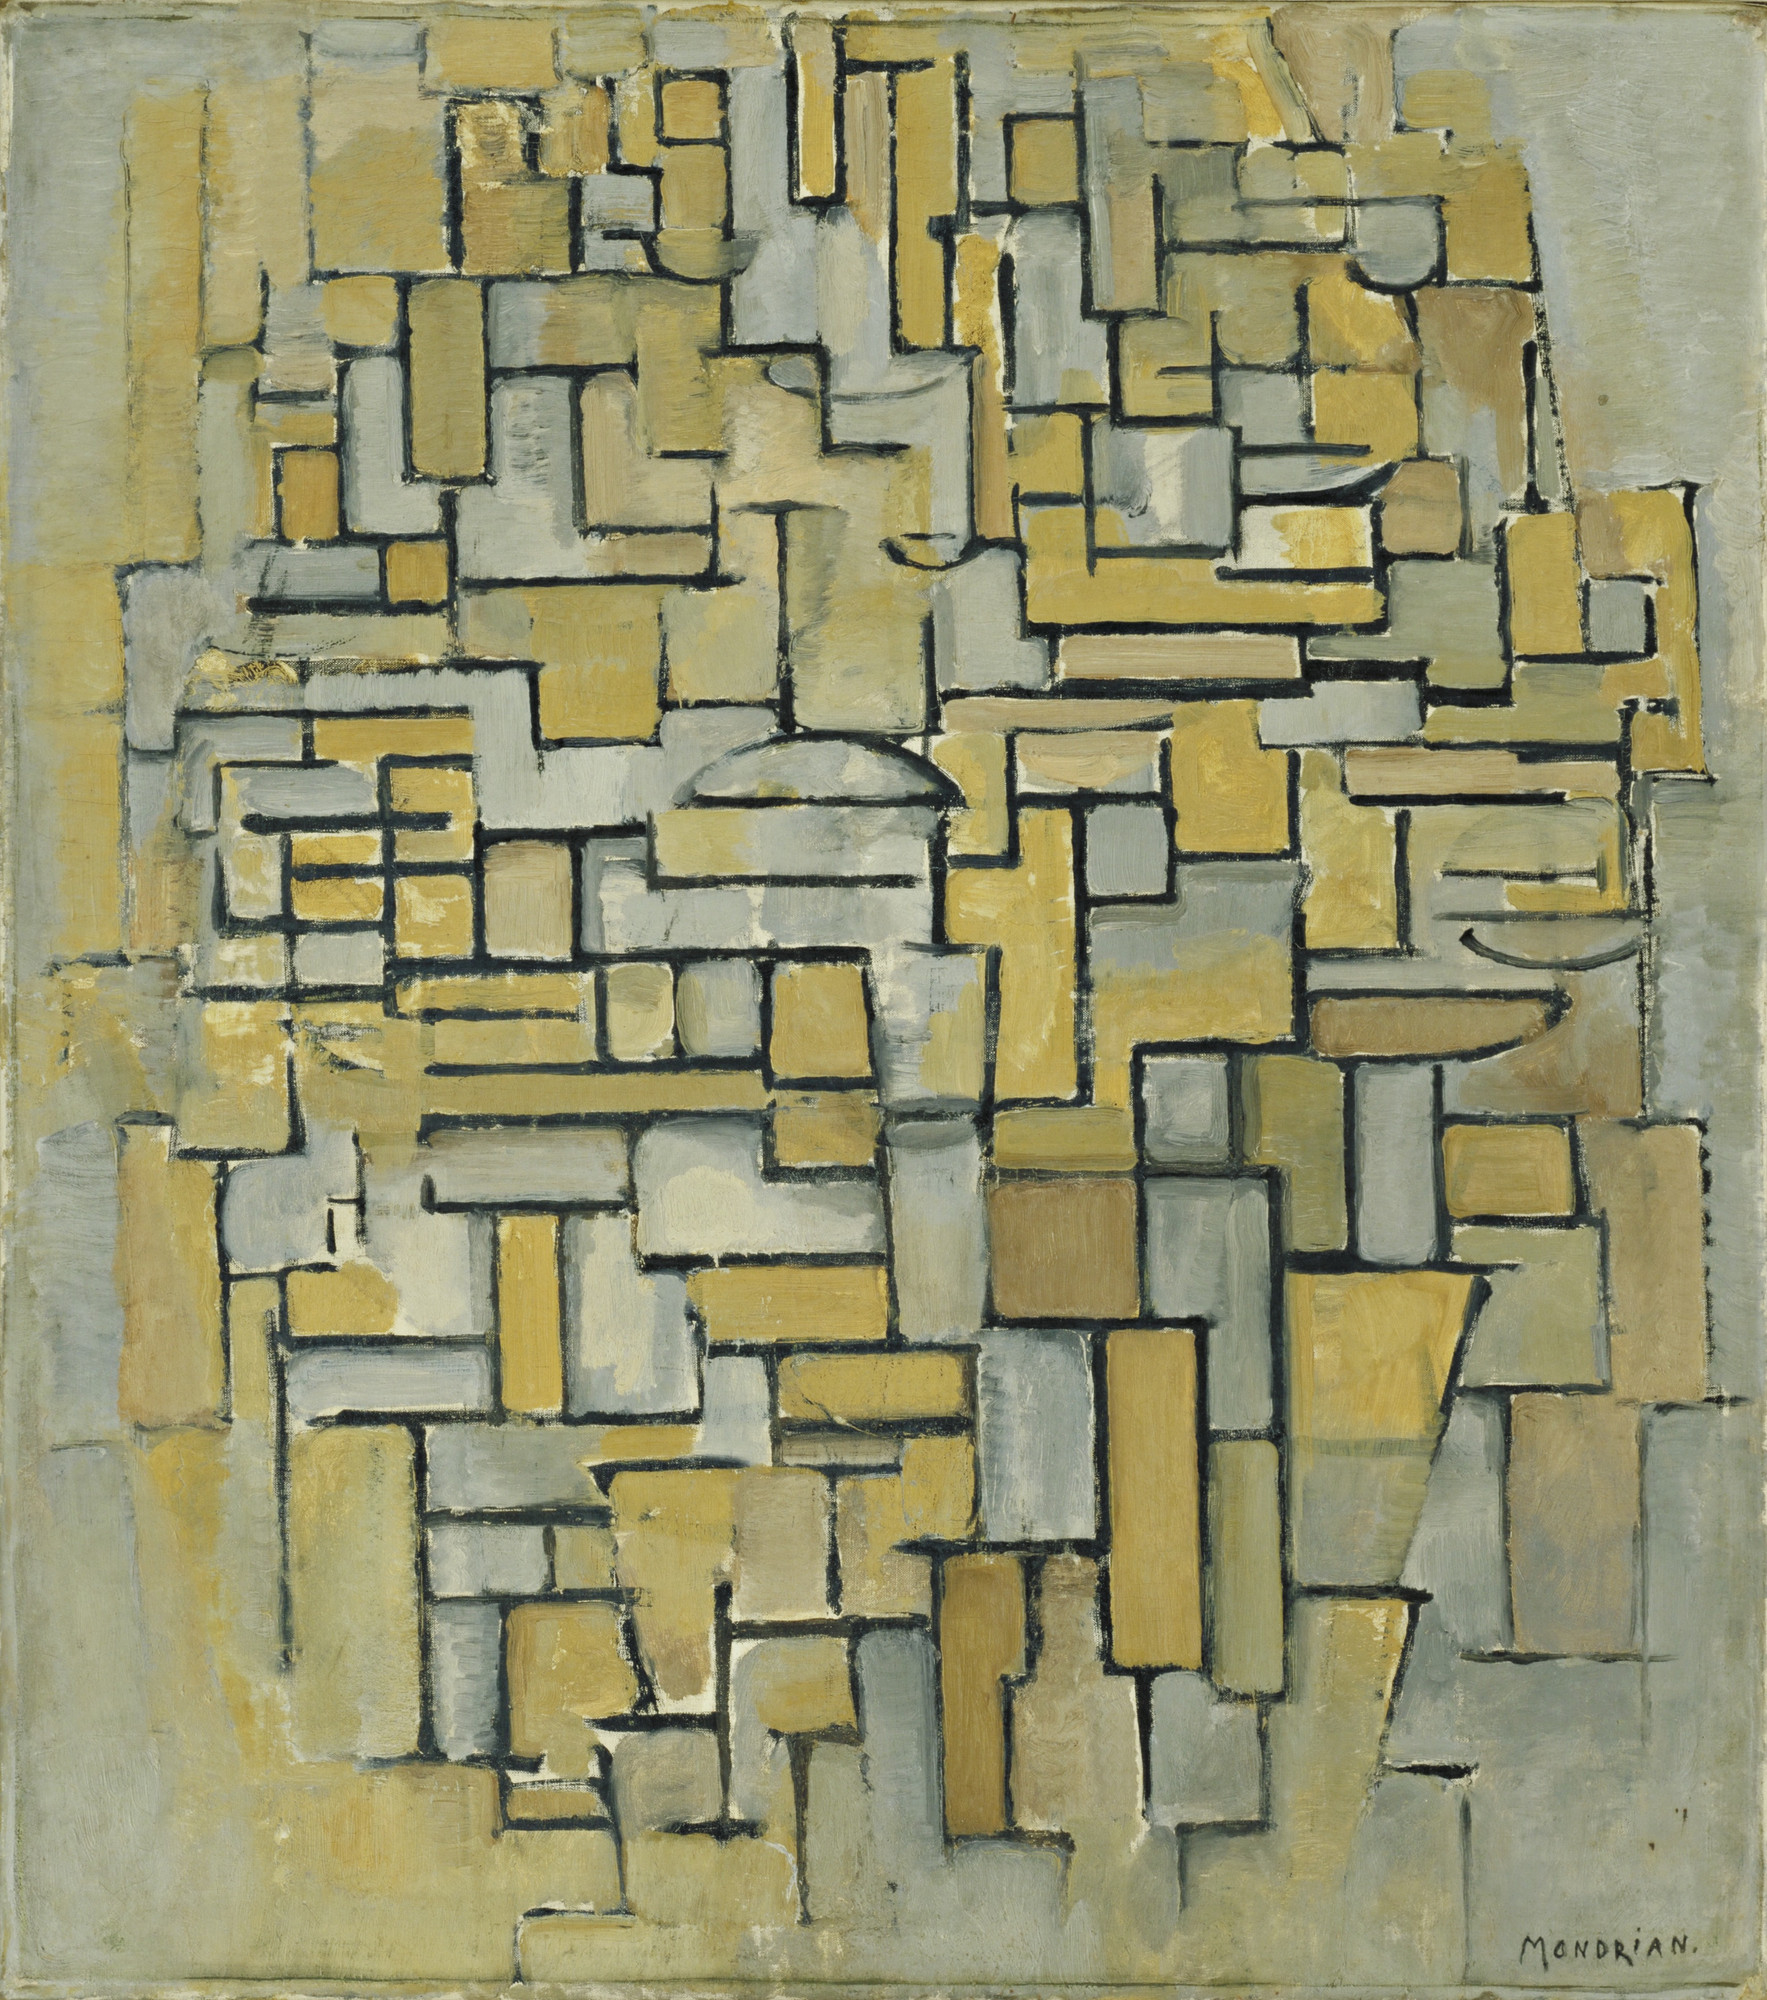 Piet Mondrian. Composition in Brown and Gray. 1913